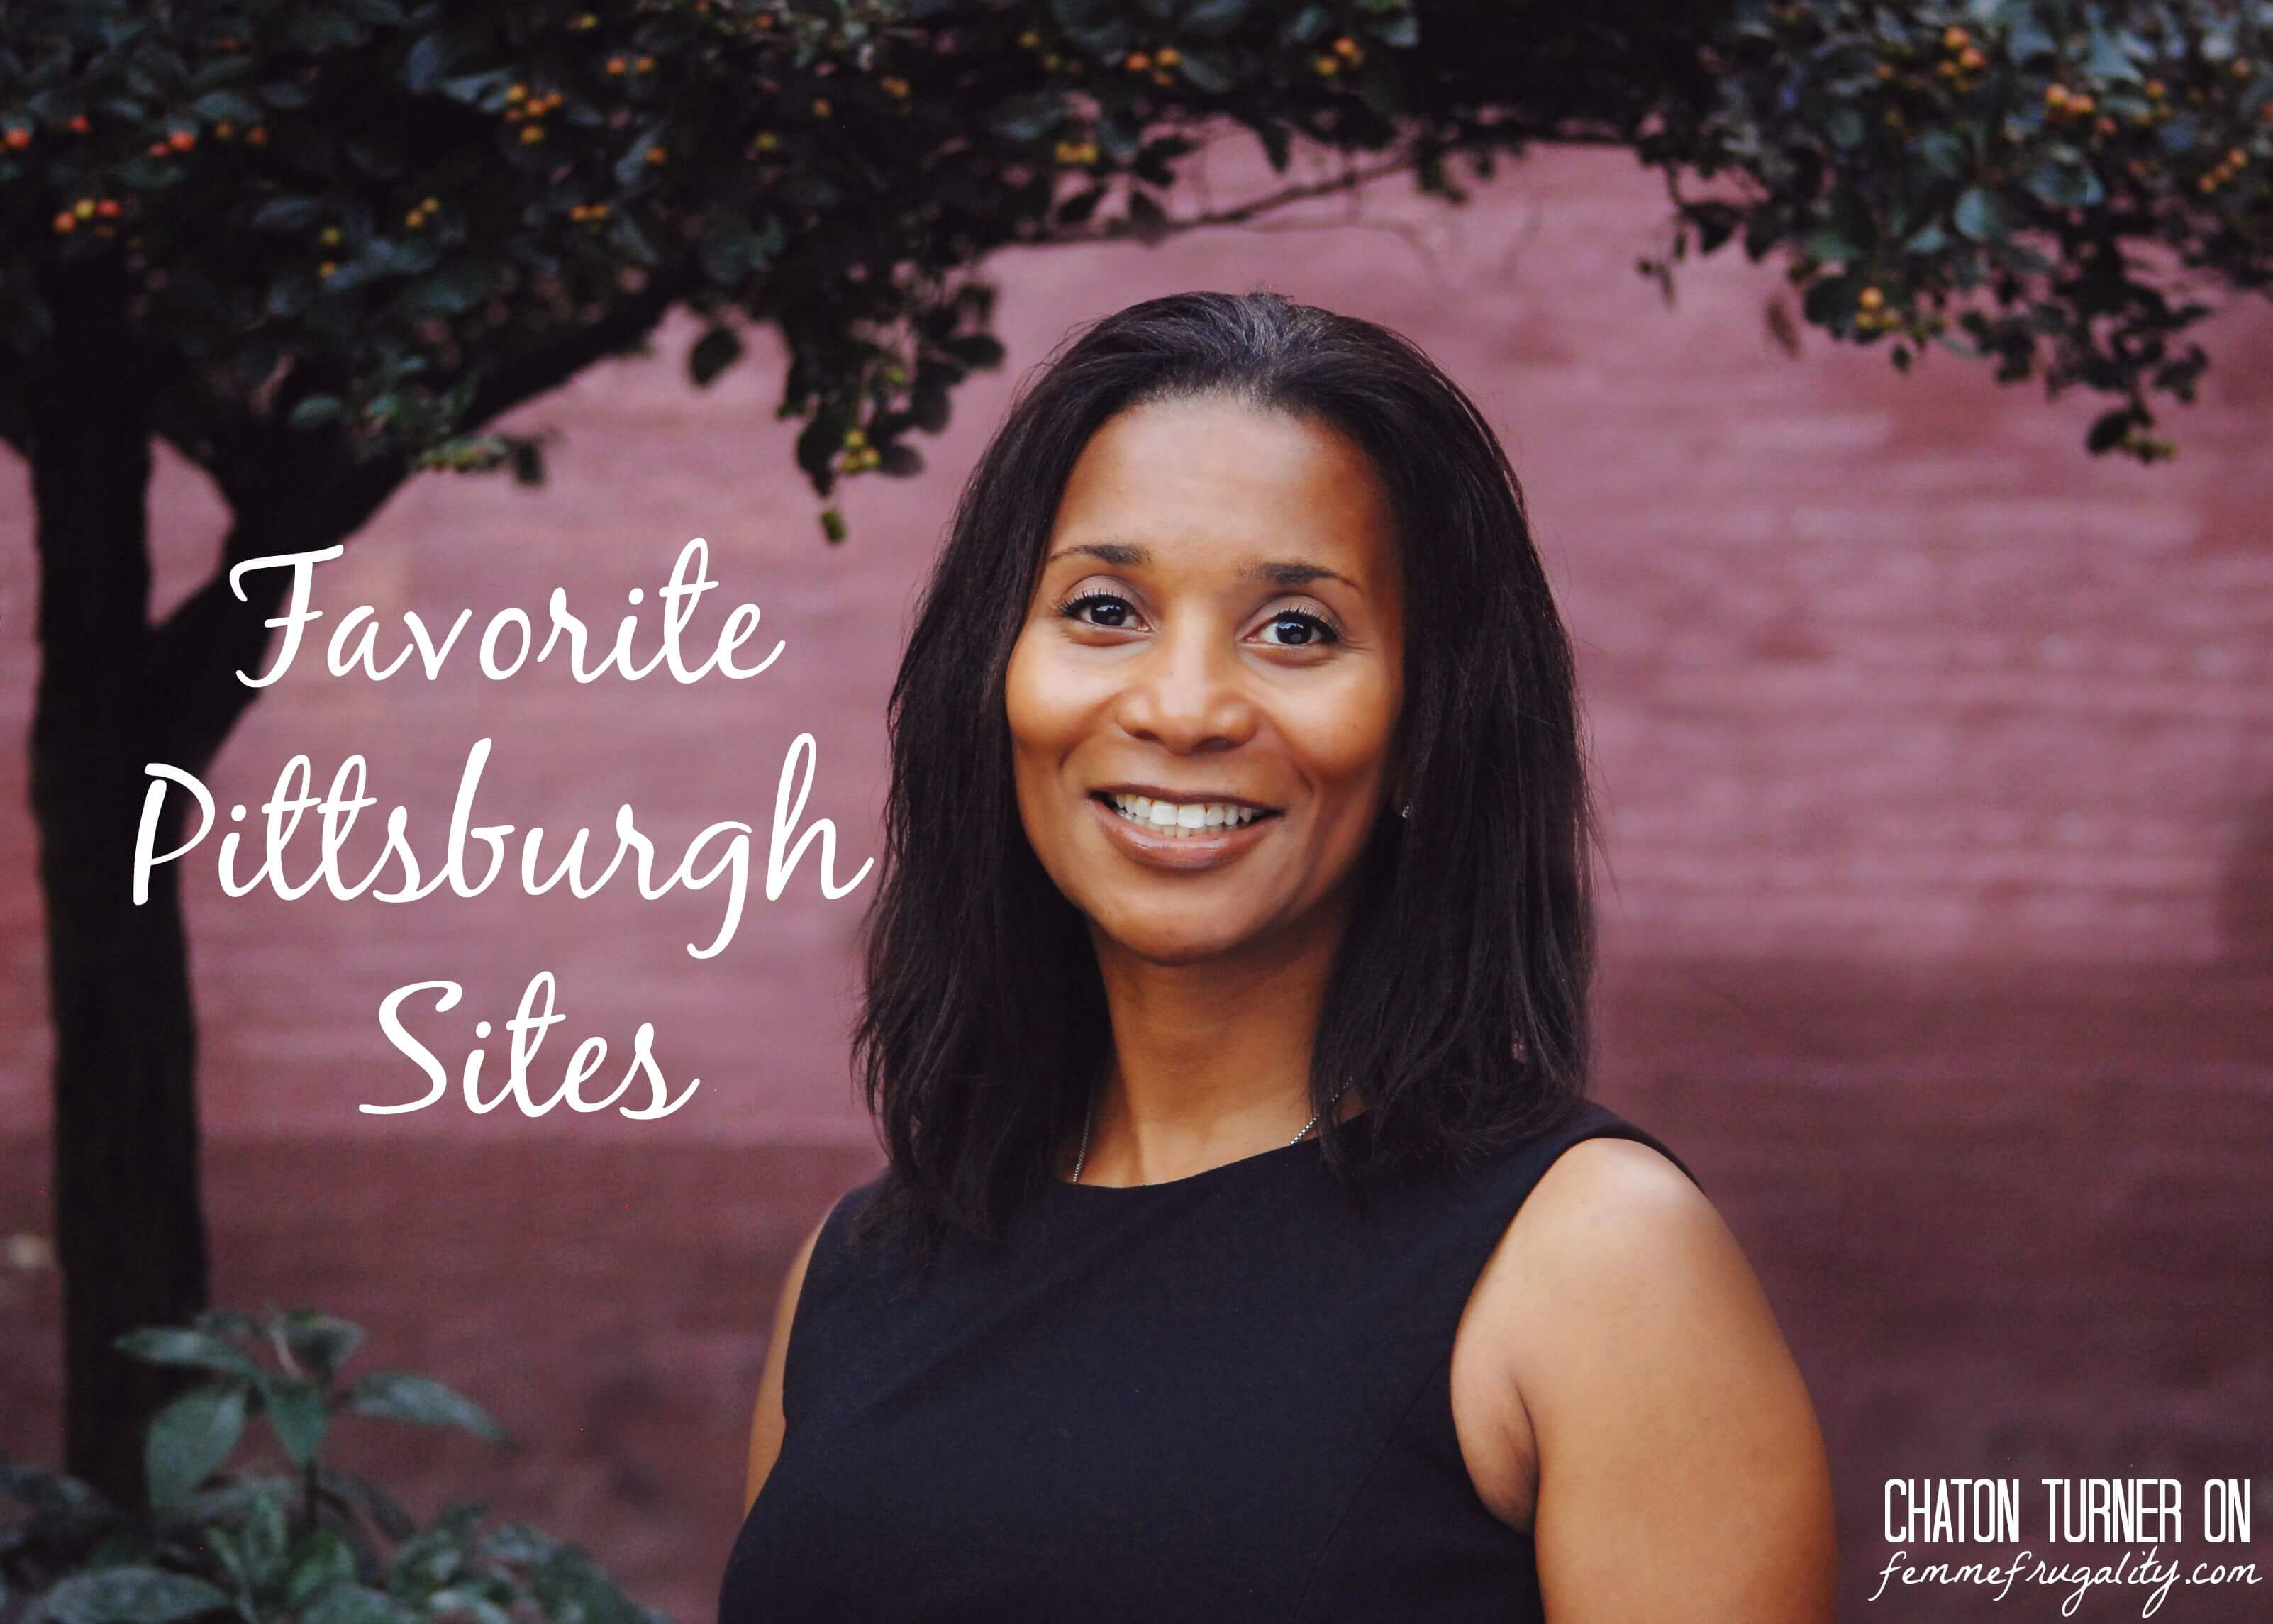 Find out Chaton's favorite Pittsburgh spot. It comes with a dash of social entrepreneurship.